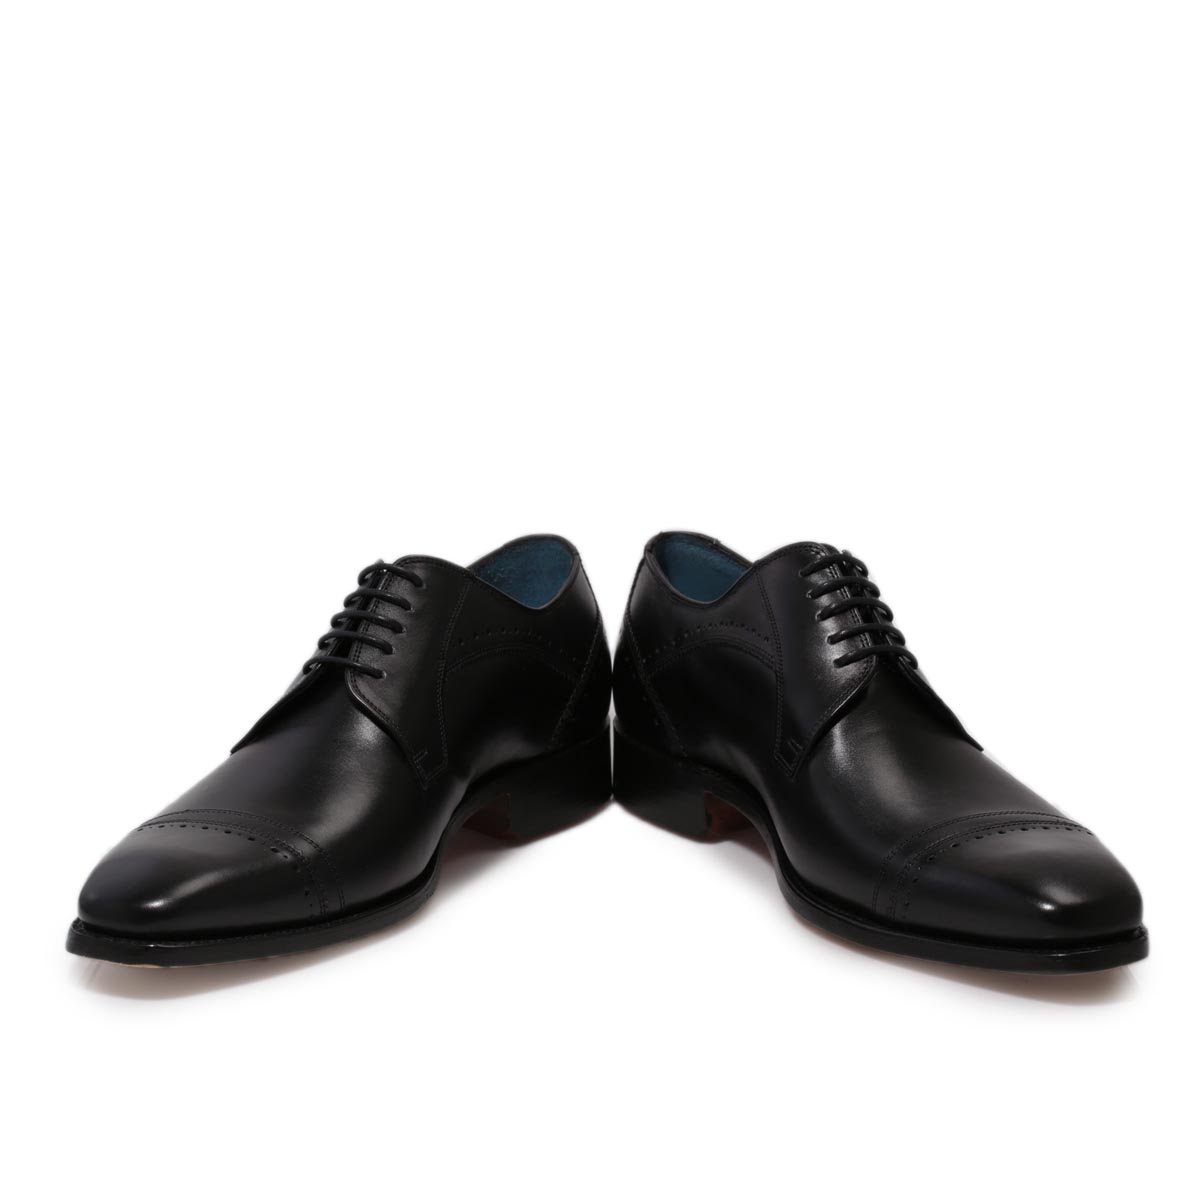 Barker Blake Oxford Black Leather Smart Lace Up Mens Formal Shoes ...